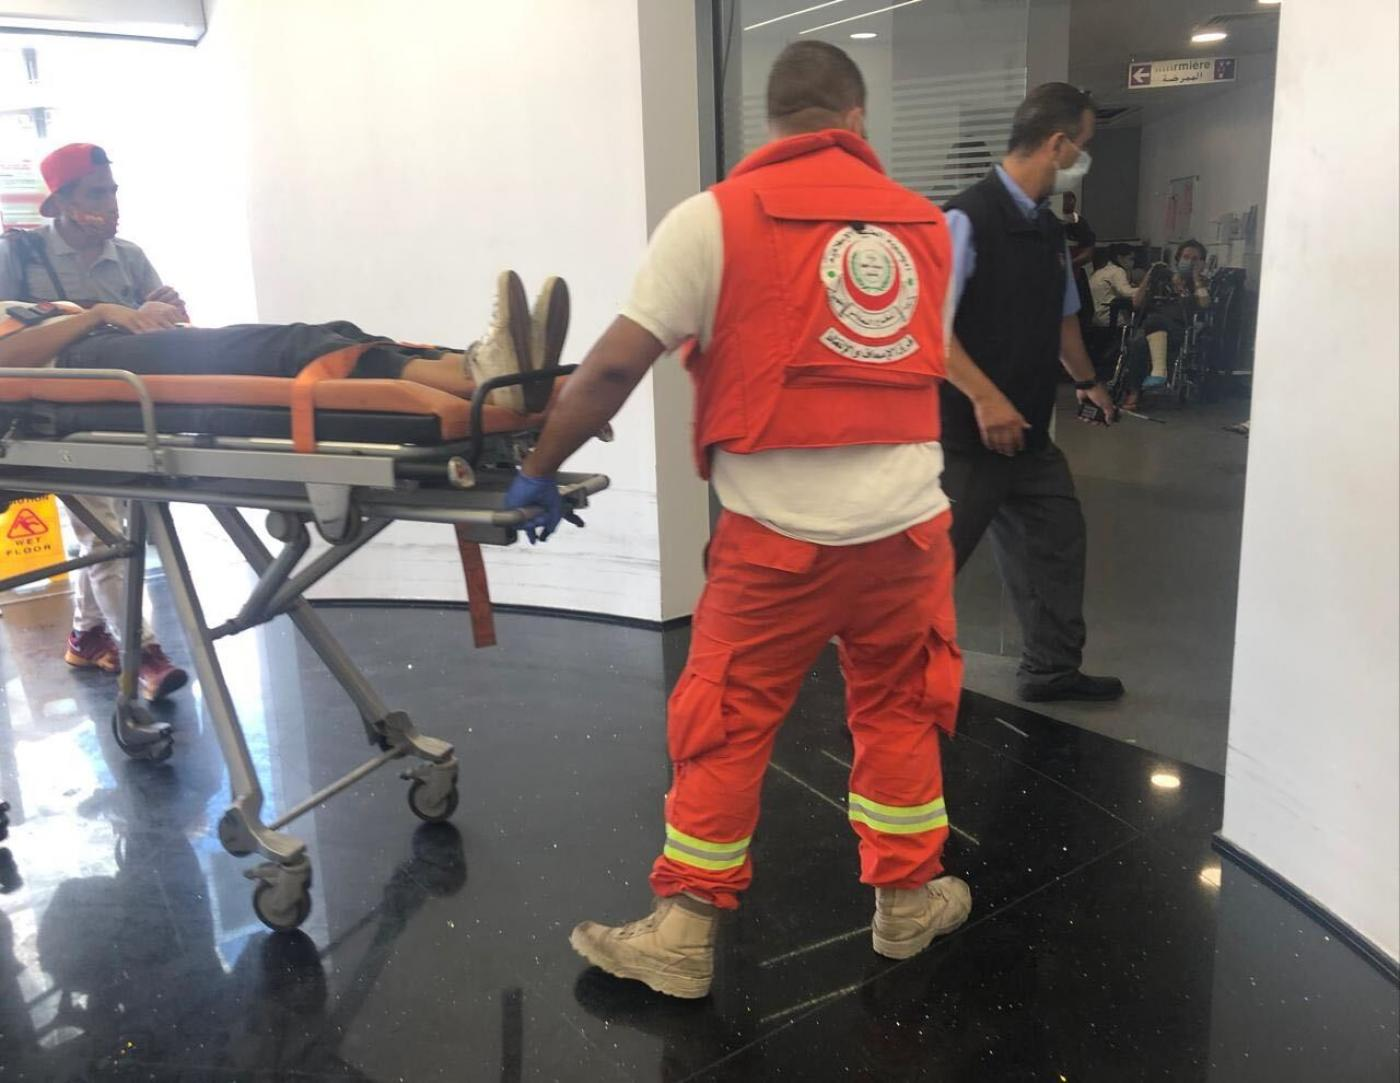 A patient carried on a stretcher at Hotel Dieu de France in Lebanon's Ashrafieh district